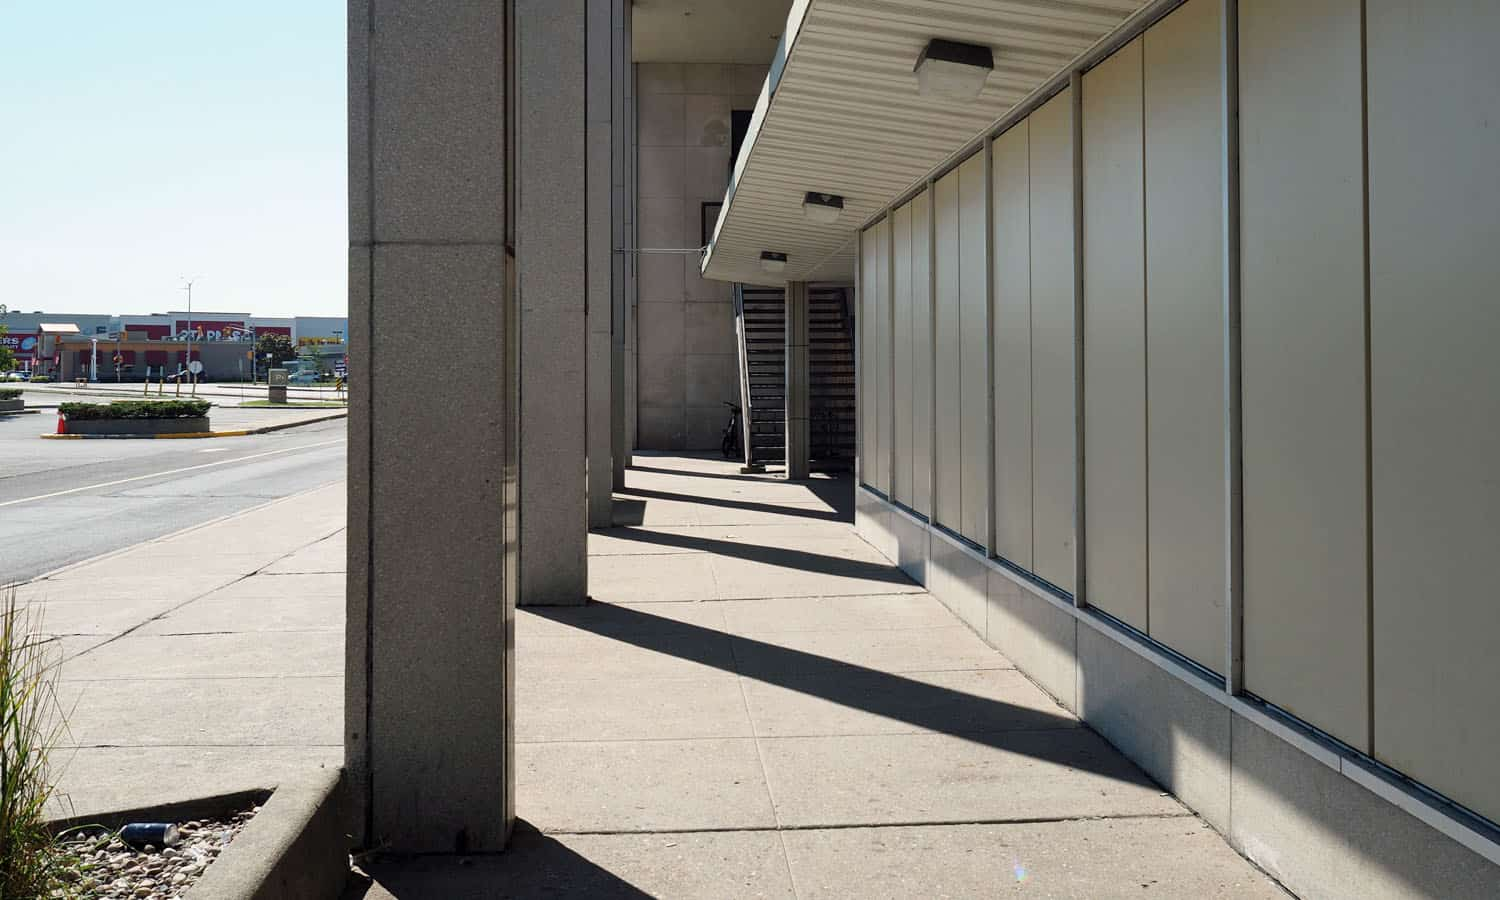 Shadow play under the double-height east colonnade